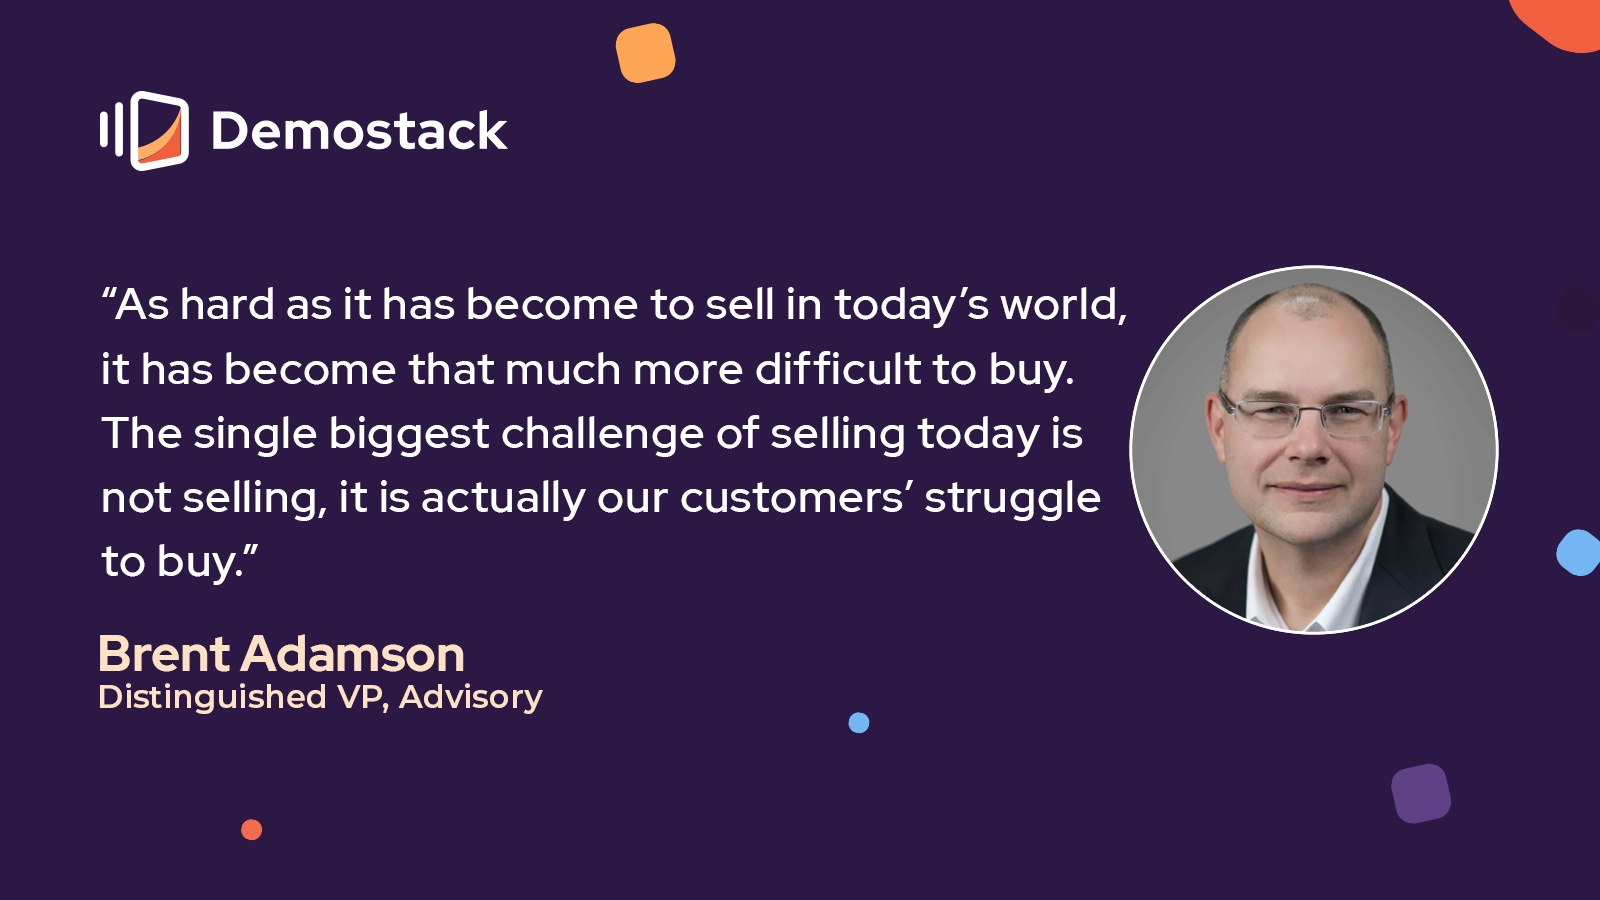 """A quote from Brent Adamson, distinguished VP at Advisory: """"As hard as it has become to sell in today's world, it has become that much more difficult to buy. The single biggest challenge of selling today is not selling, it is actually our customers' struggle to buy."""""""